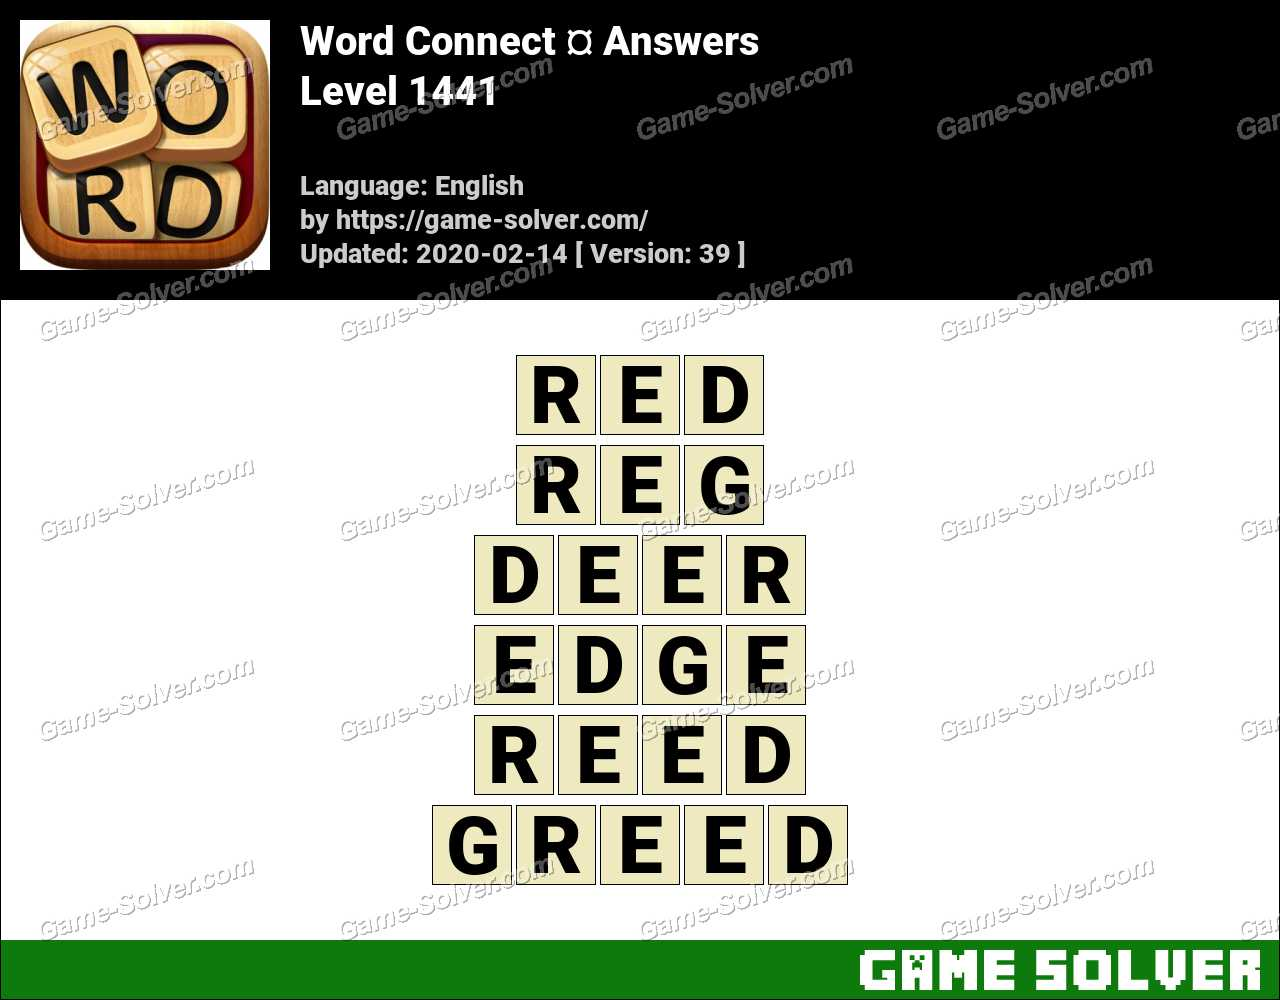 Word Connect Level 1441 Answers